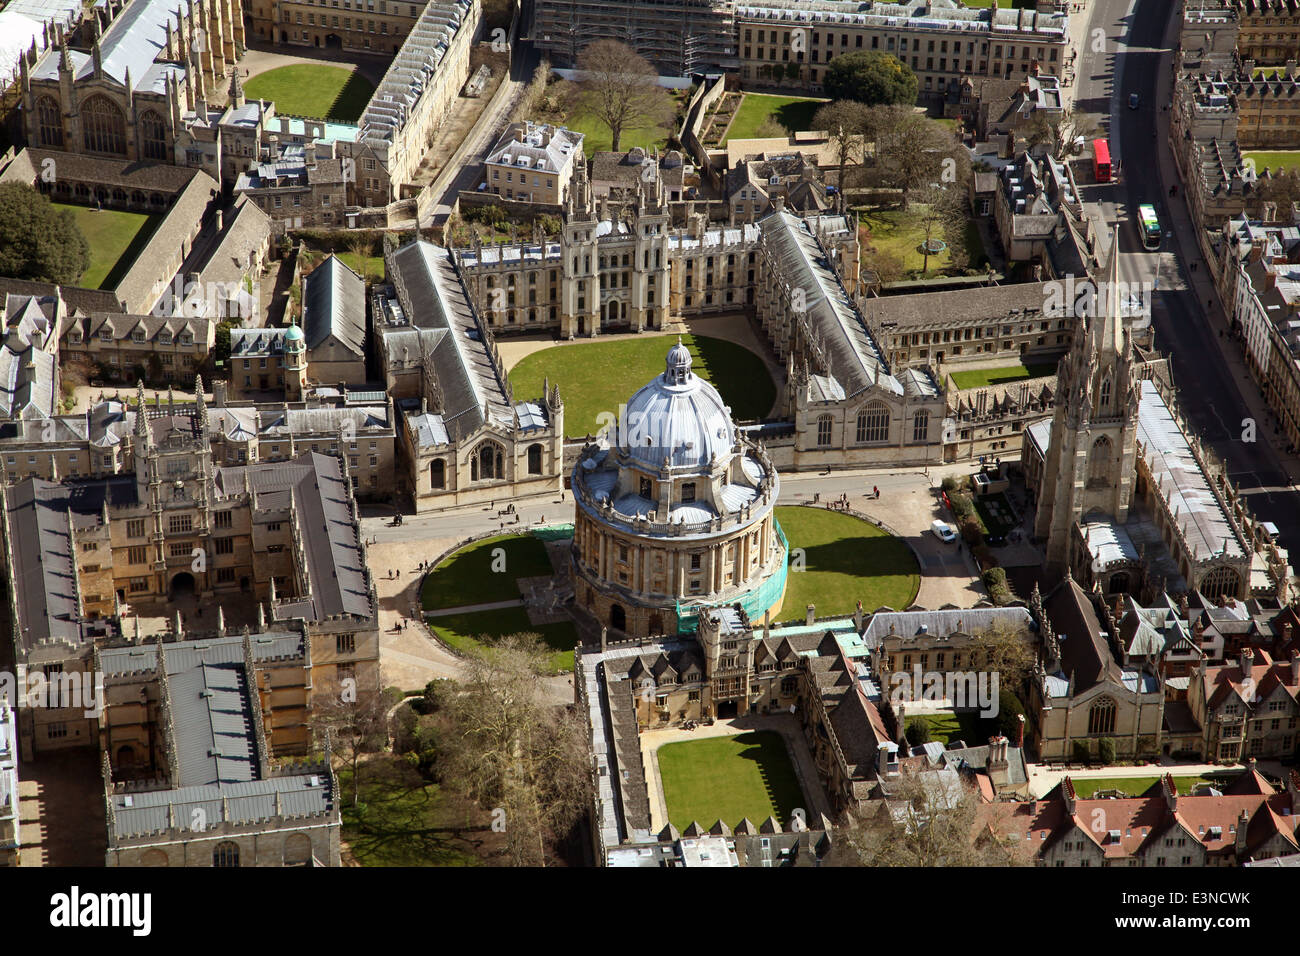 aerial view of Oxford city centre and Oxford University colleges - Stock Image